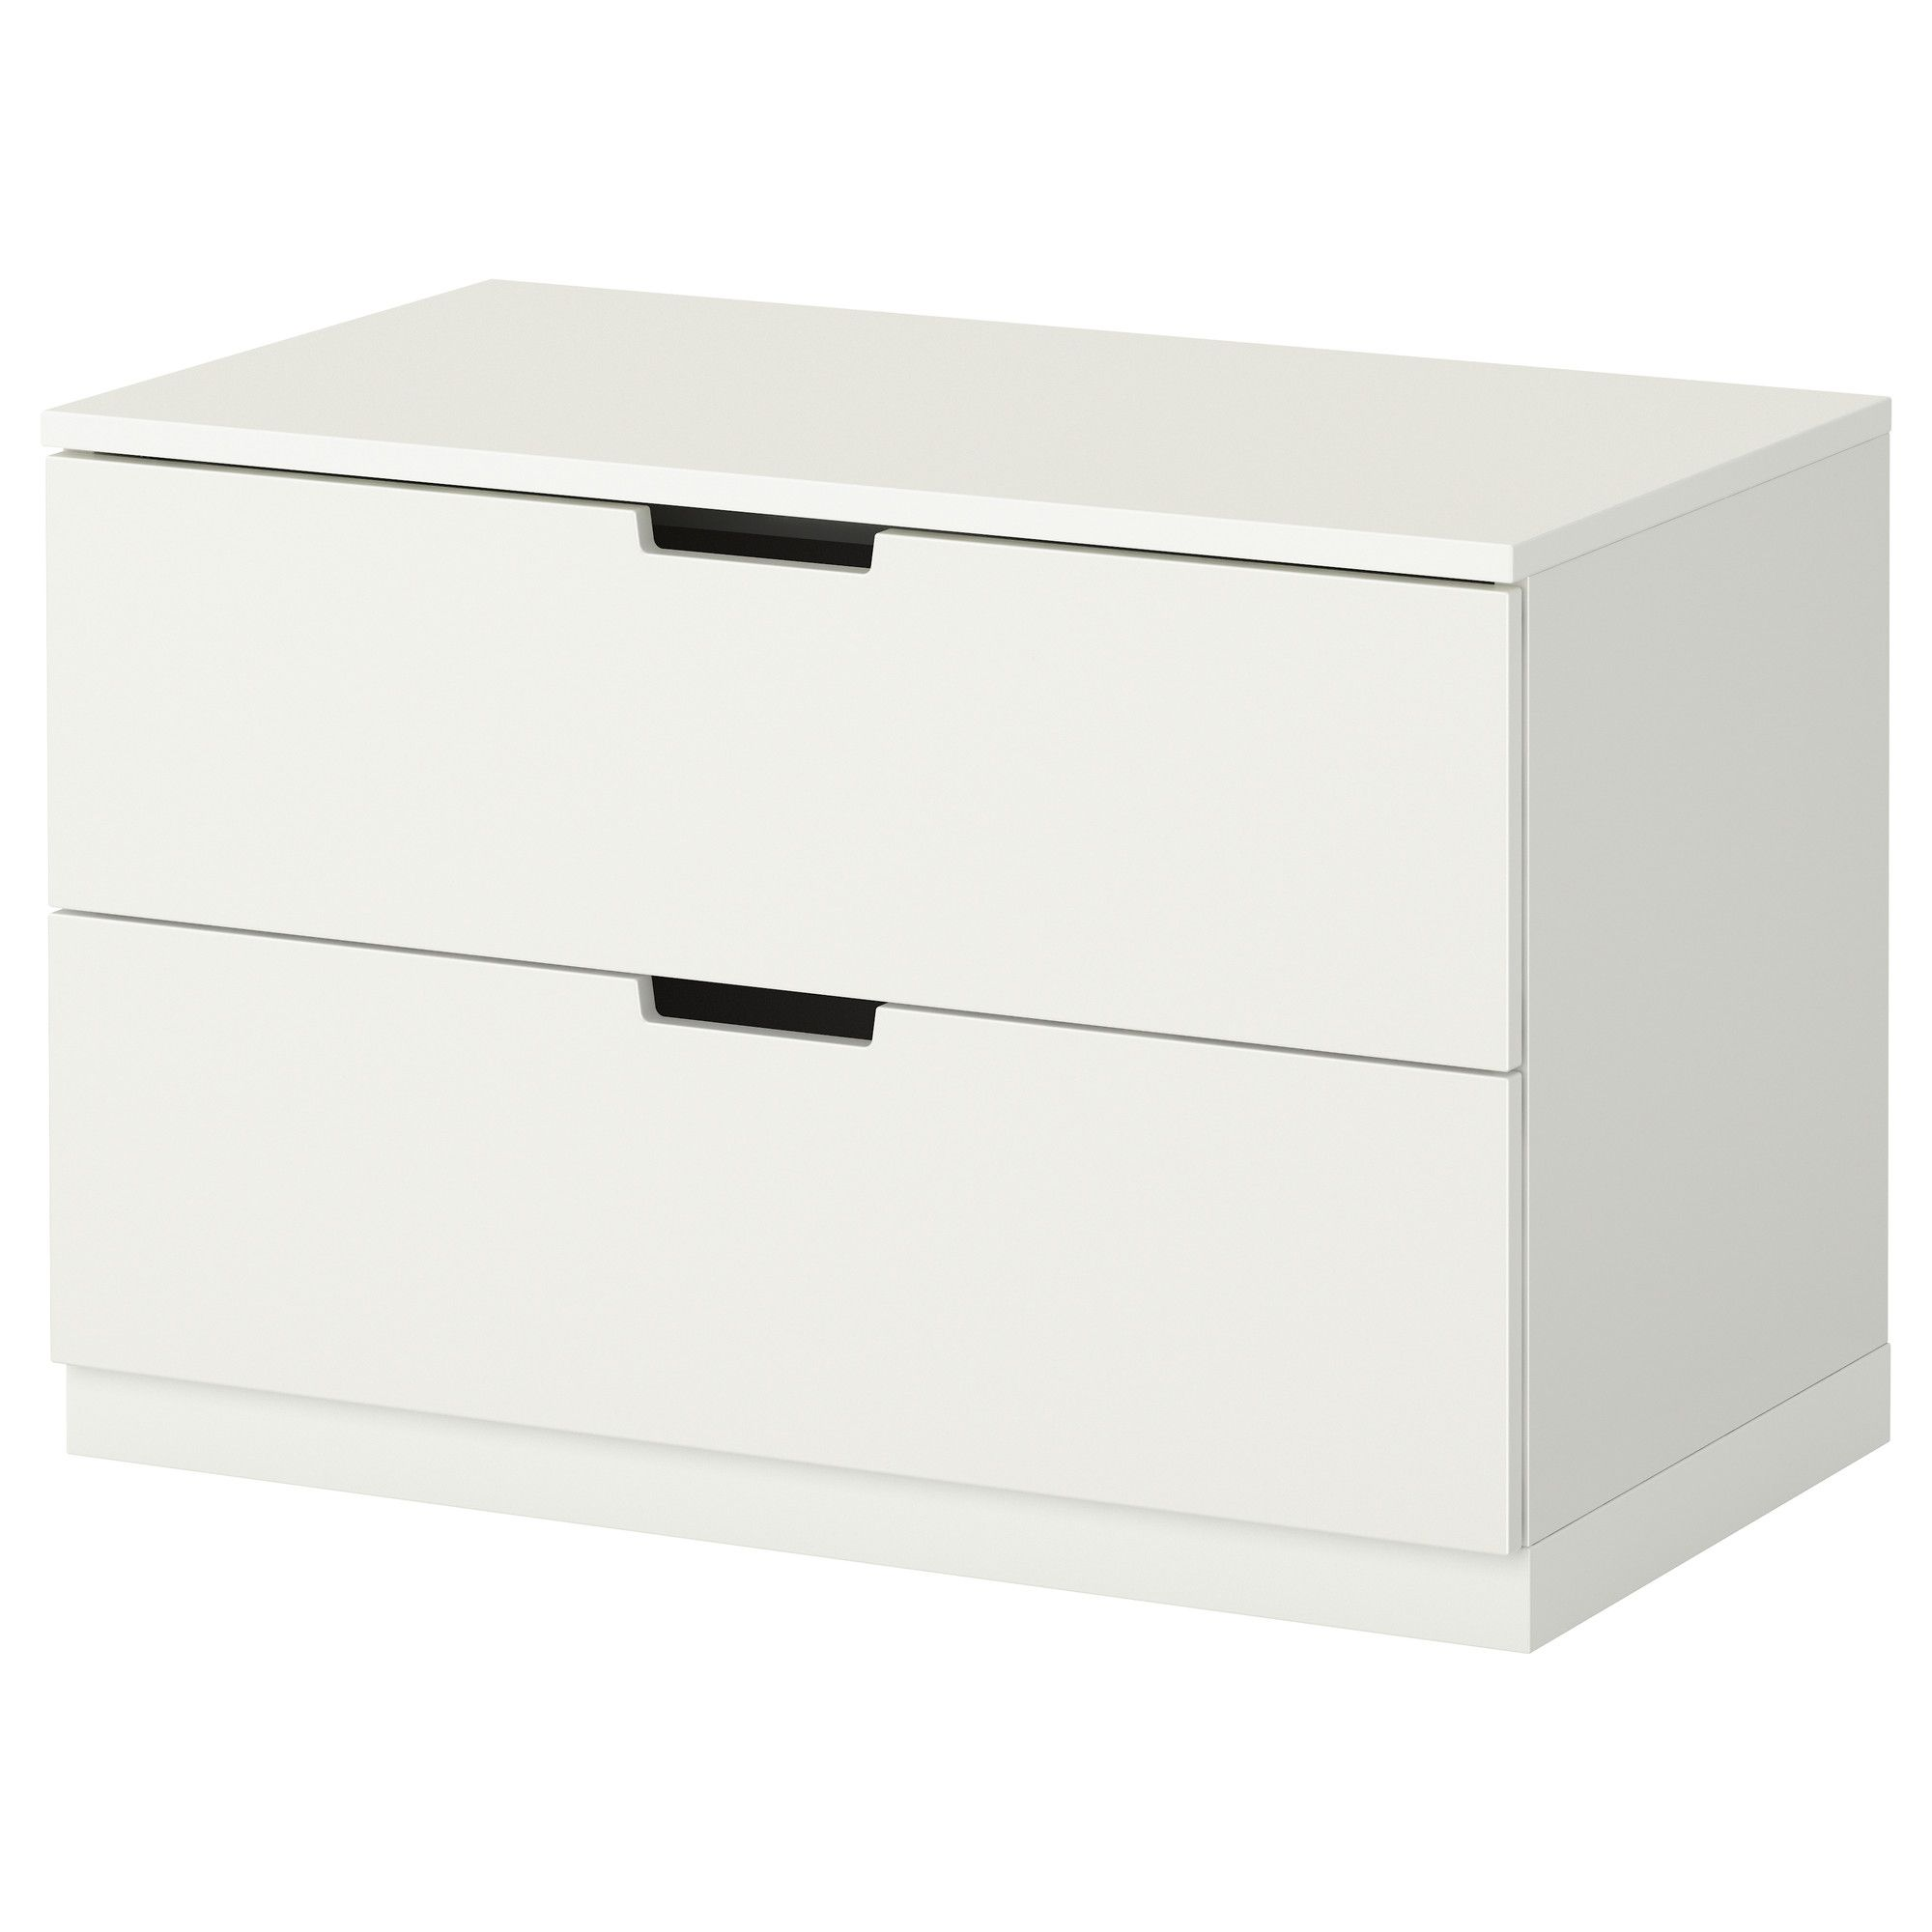 nordli kommode mit 2 schubladen wei drawers. Black Bedroom Furniture Sets. Home Design Ideas